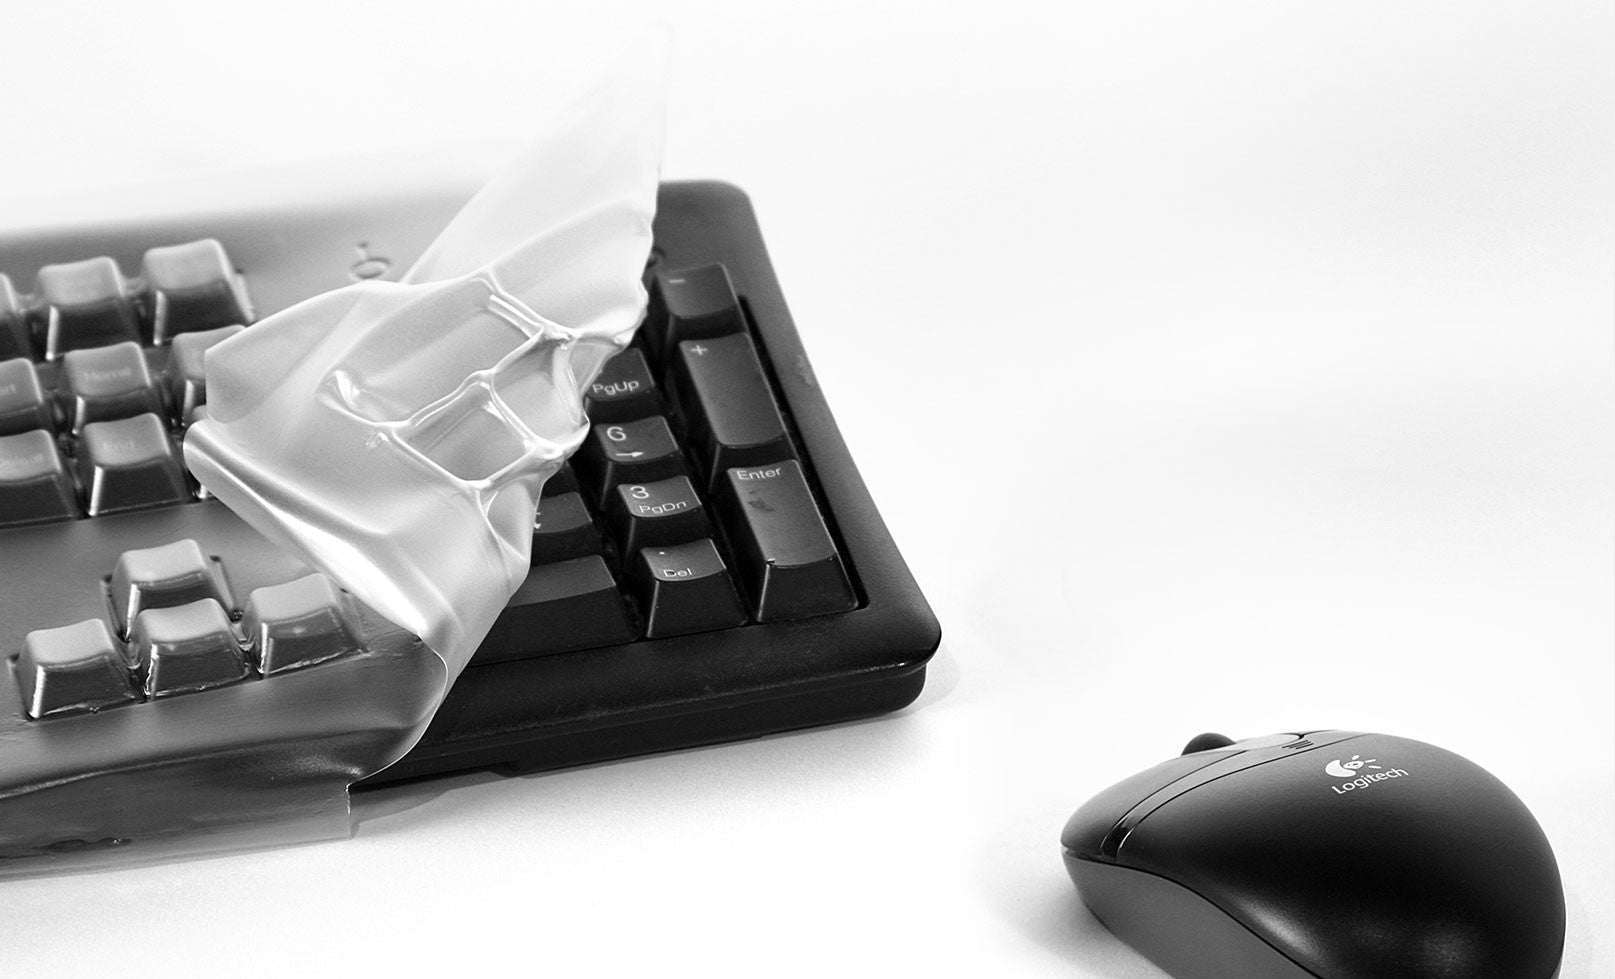 Keyboard Spill <br /> Protection So You Can